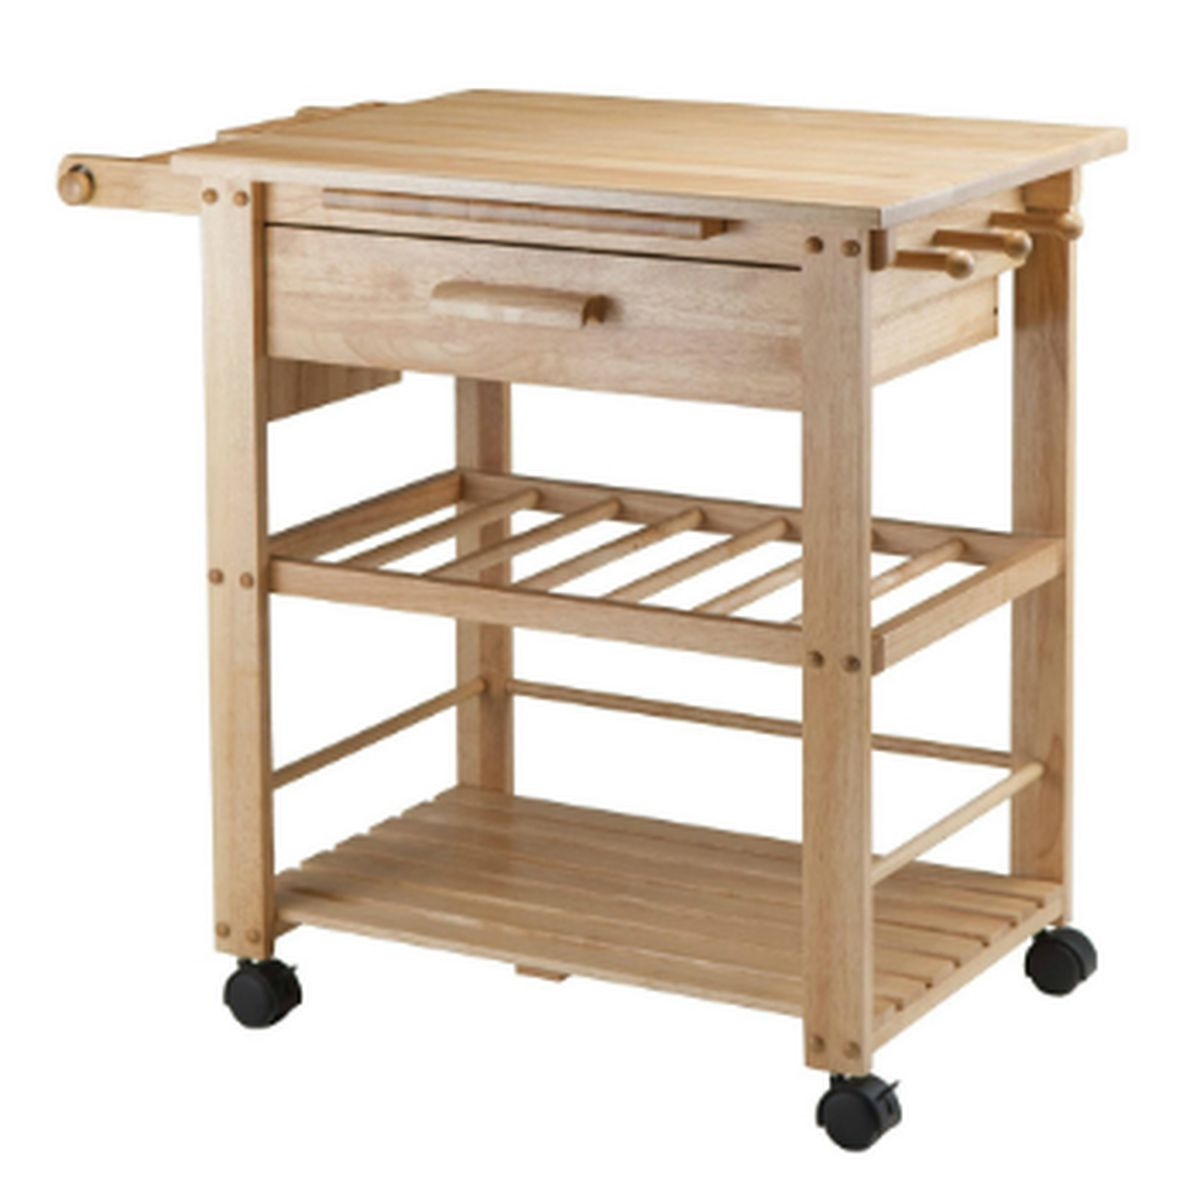 Crosley Roots Rack Industrial Kitchen Cart In Natural: 10 Ikea Essentials And Their Best Alternatives